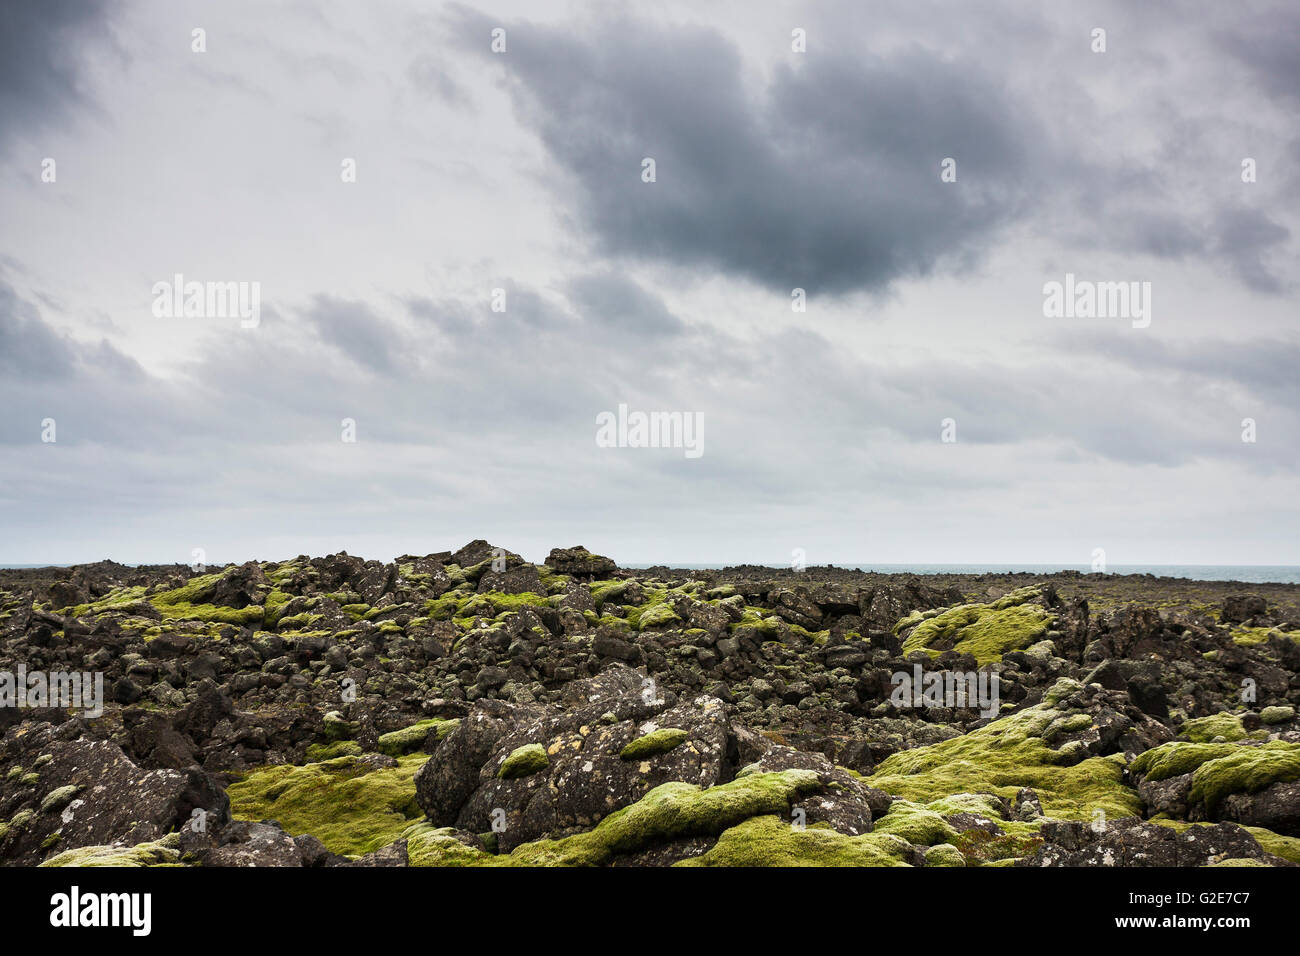 Lava Field Covered in Moss, Iceland - Stock Image